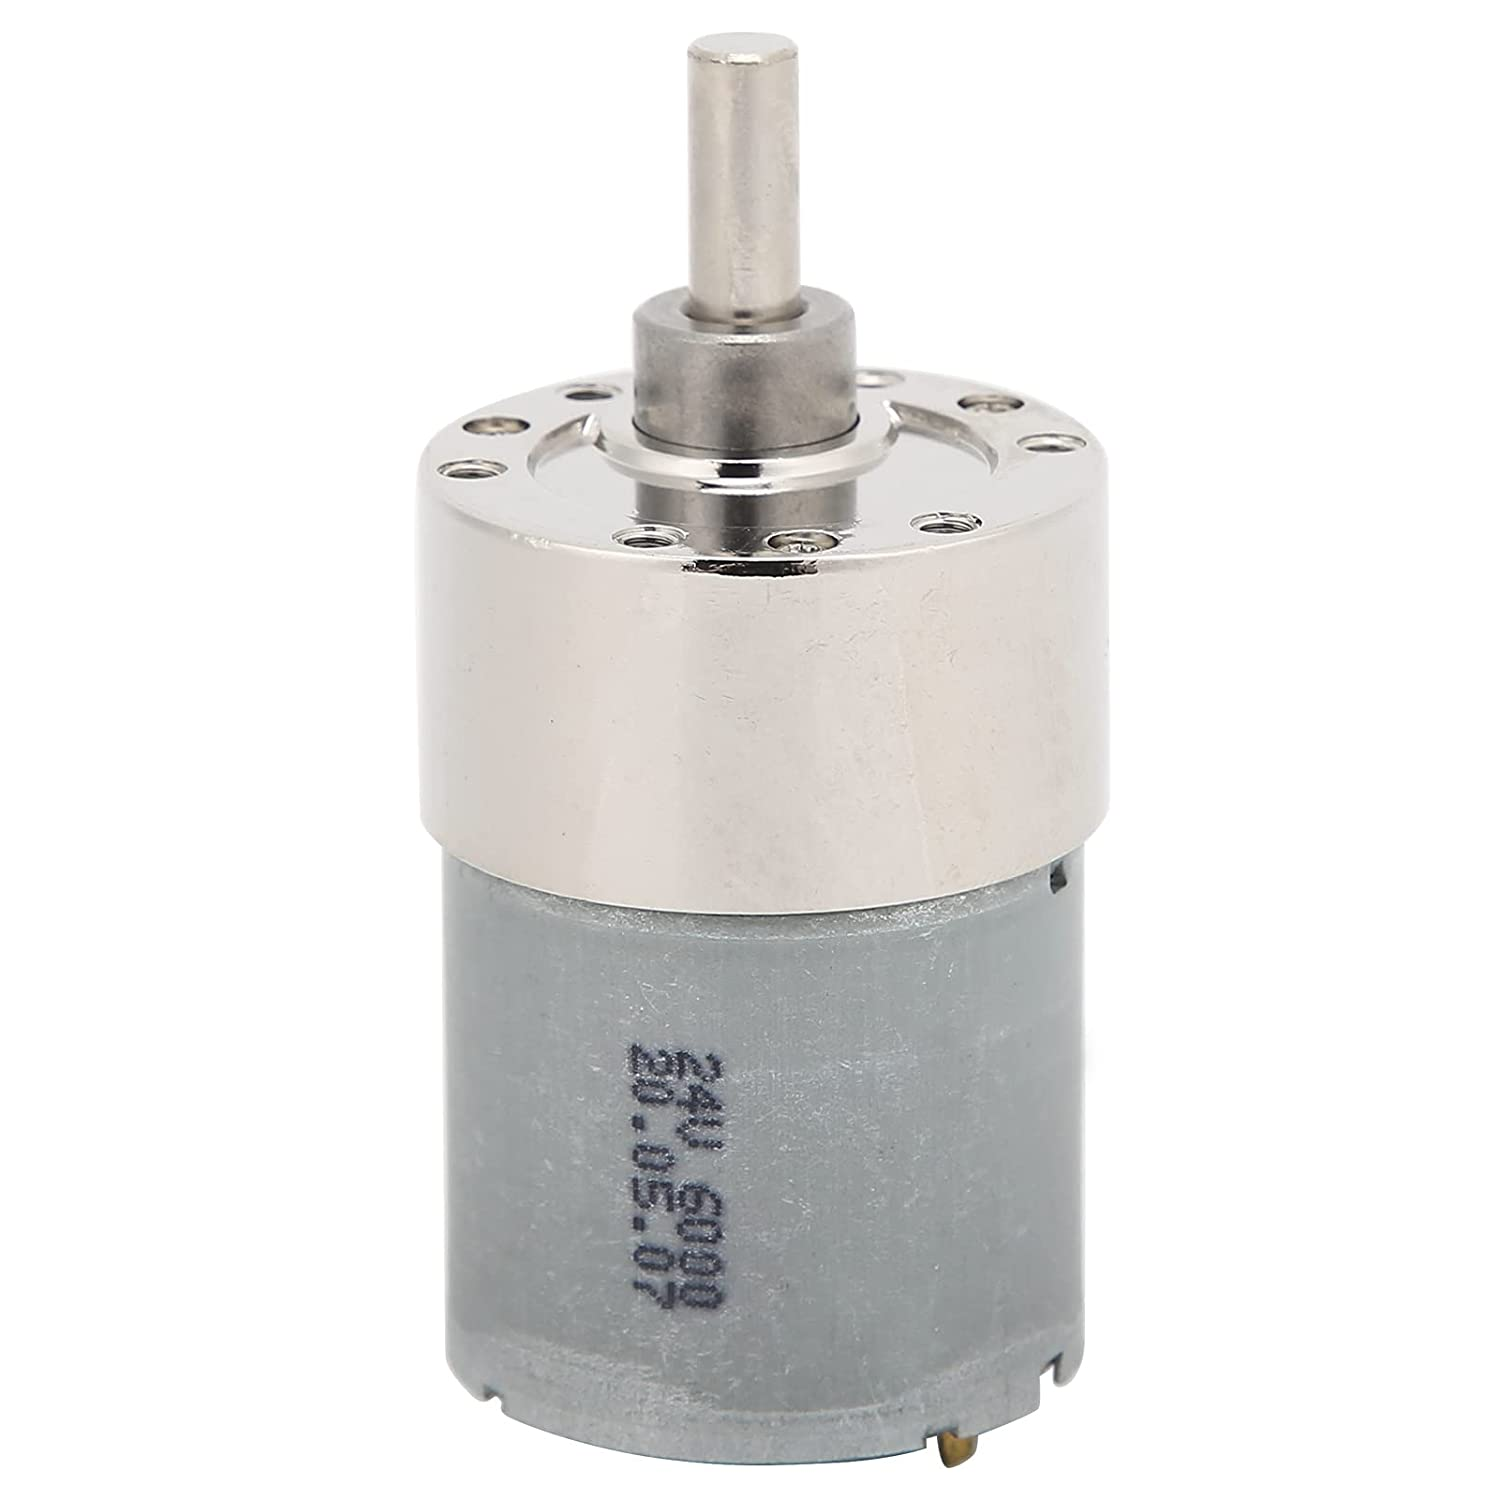 DC Gear Motor Max 56% OFF Micro Long Beach Mall Permanent Noise Magnet Reductio